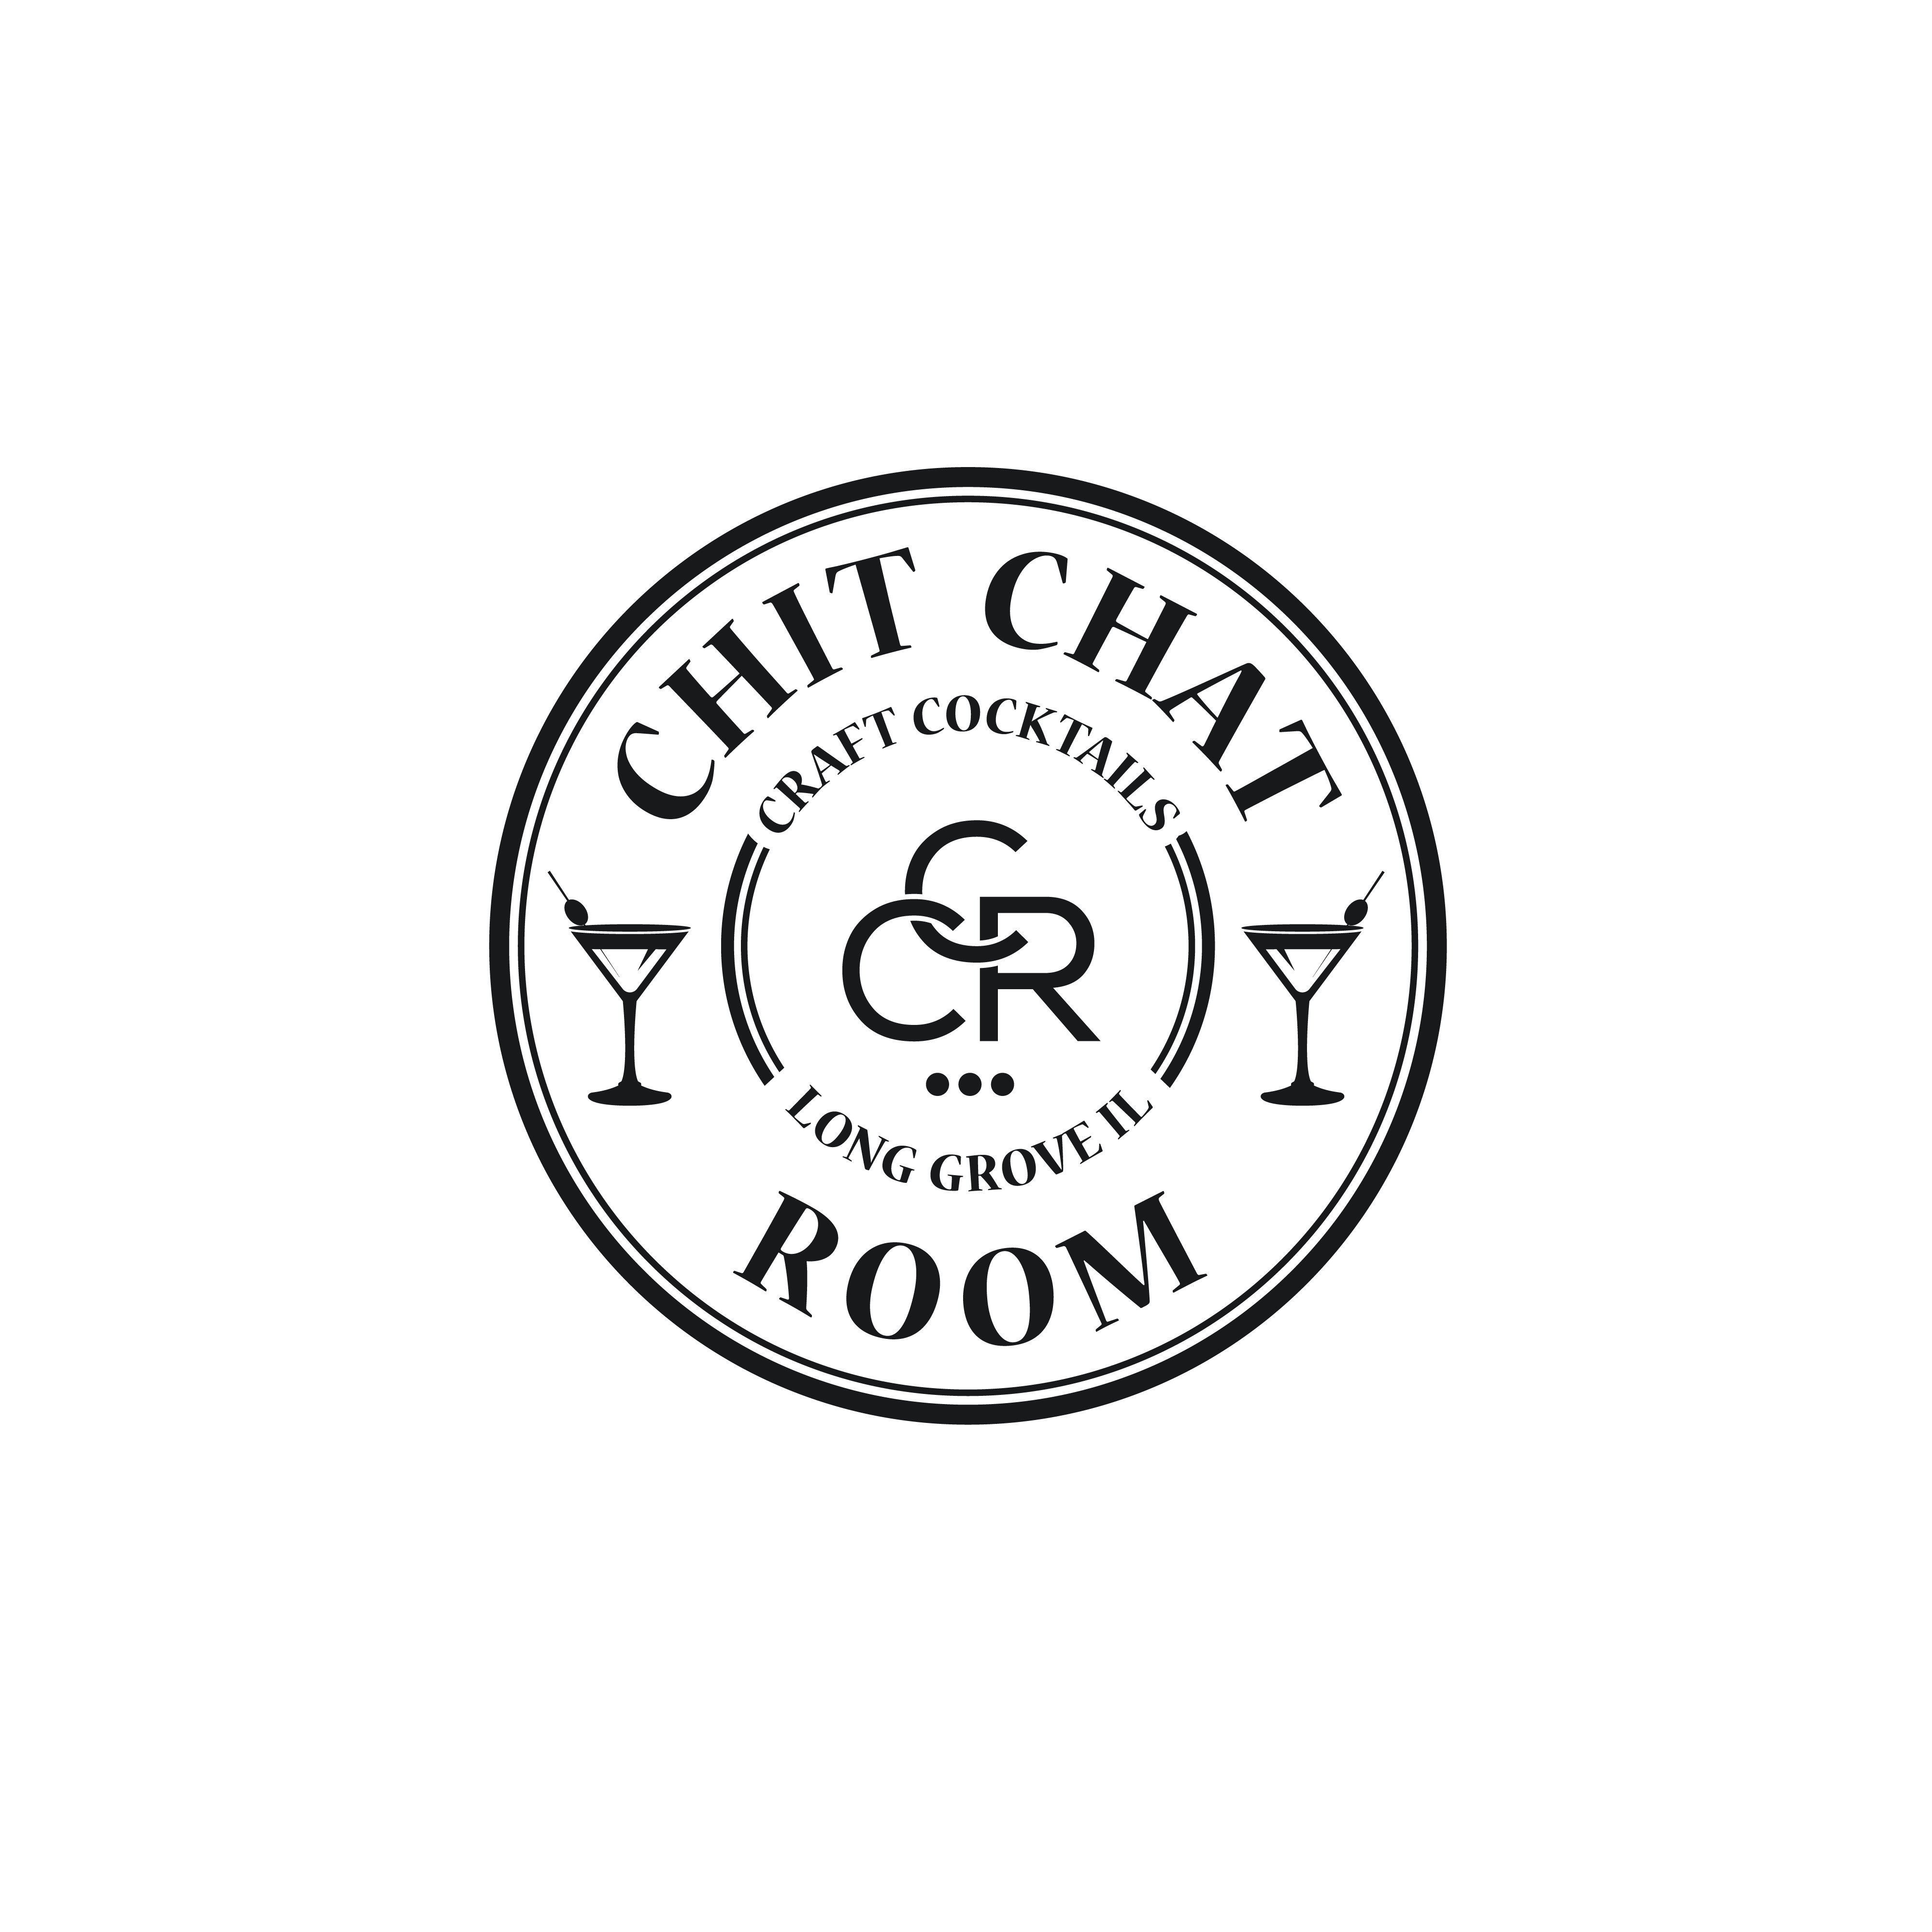 The more creative the better,  for a logo for craft cocktail bar also have beer and food. No chat icon logos please